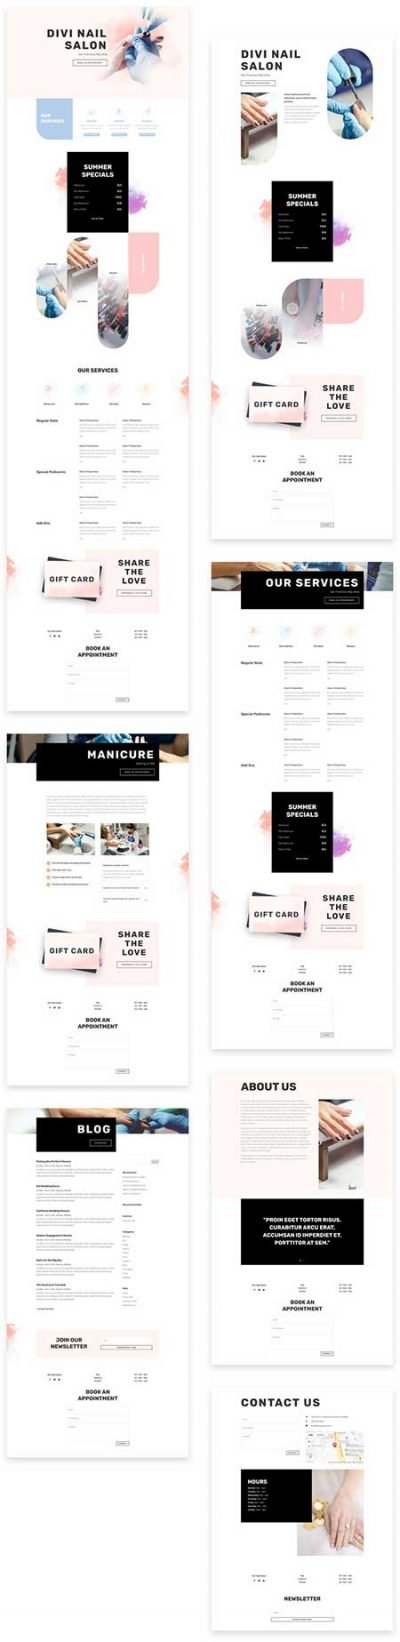 Divi nail salon website template